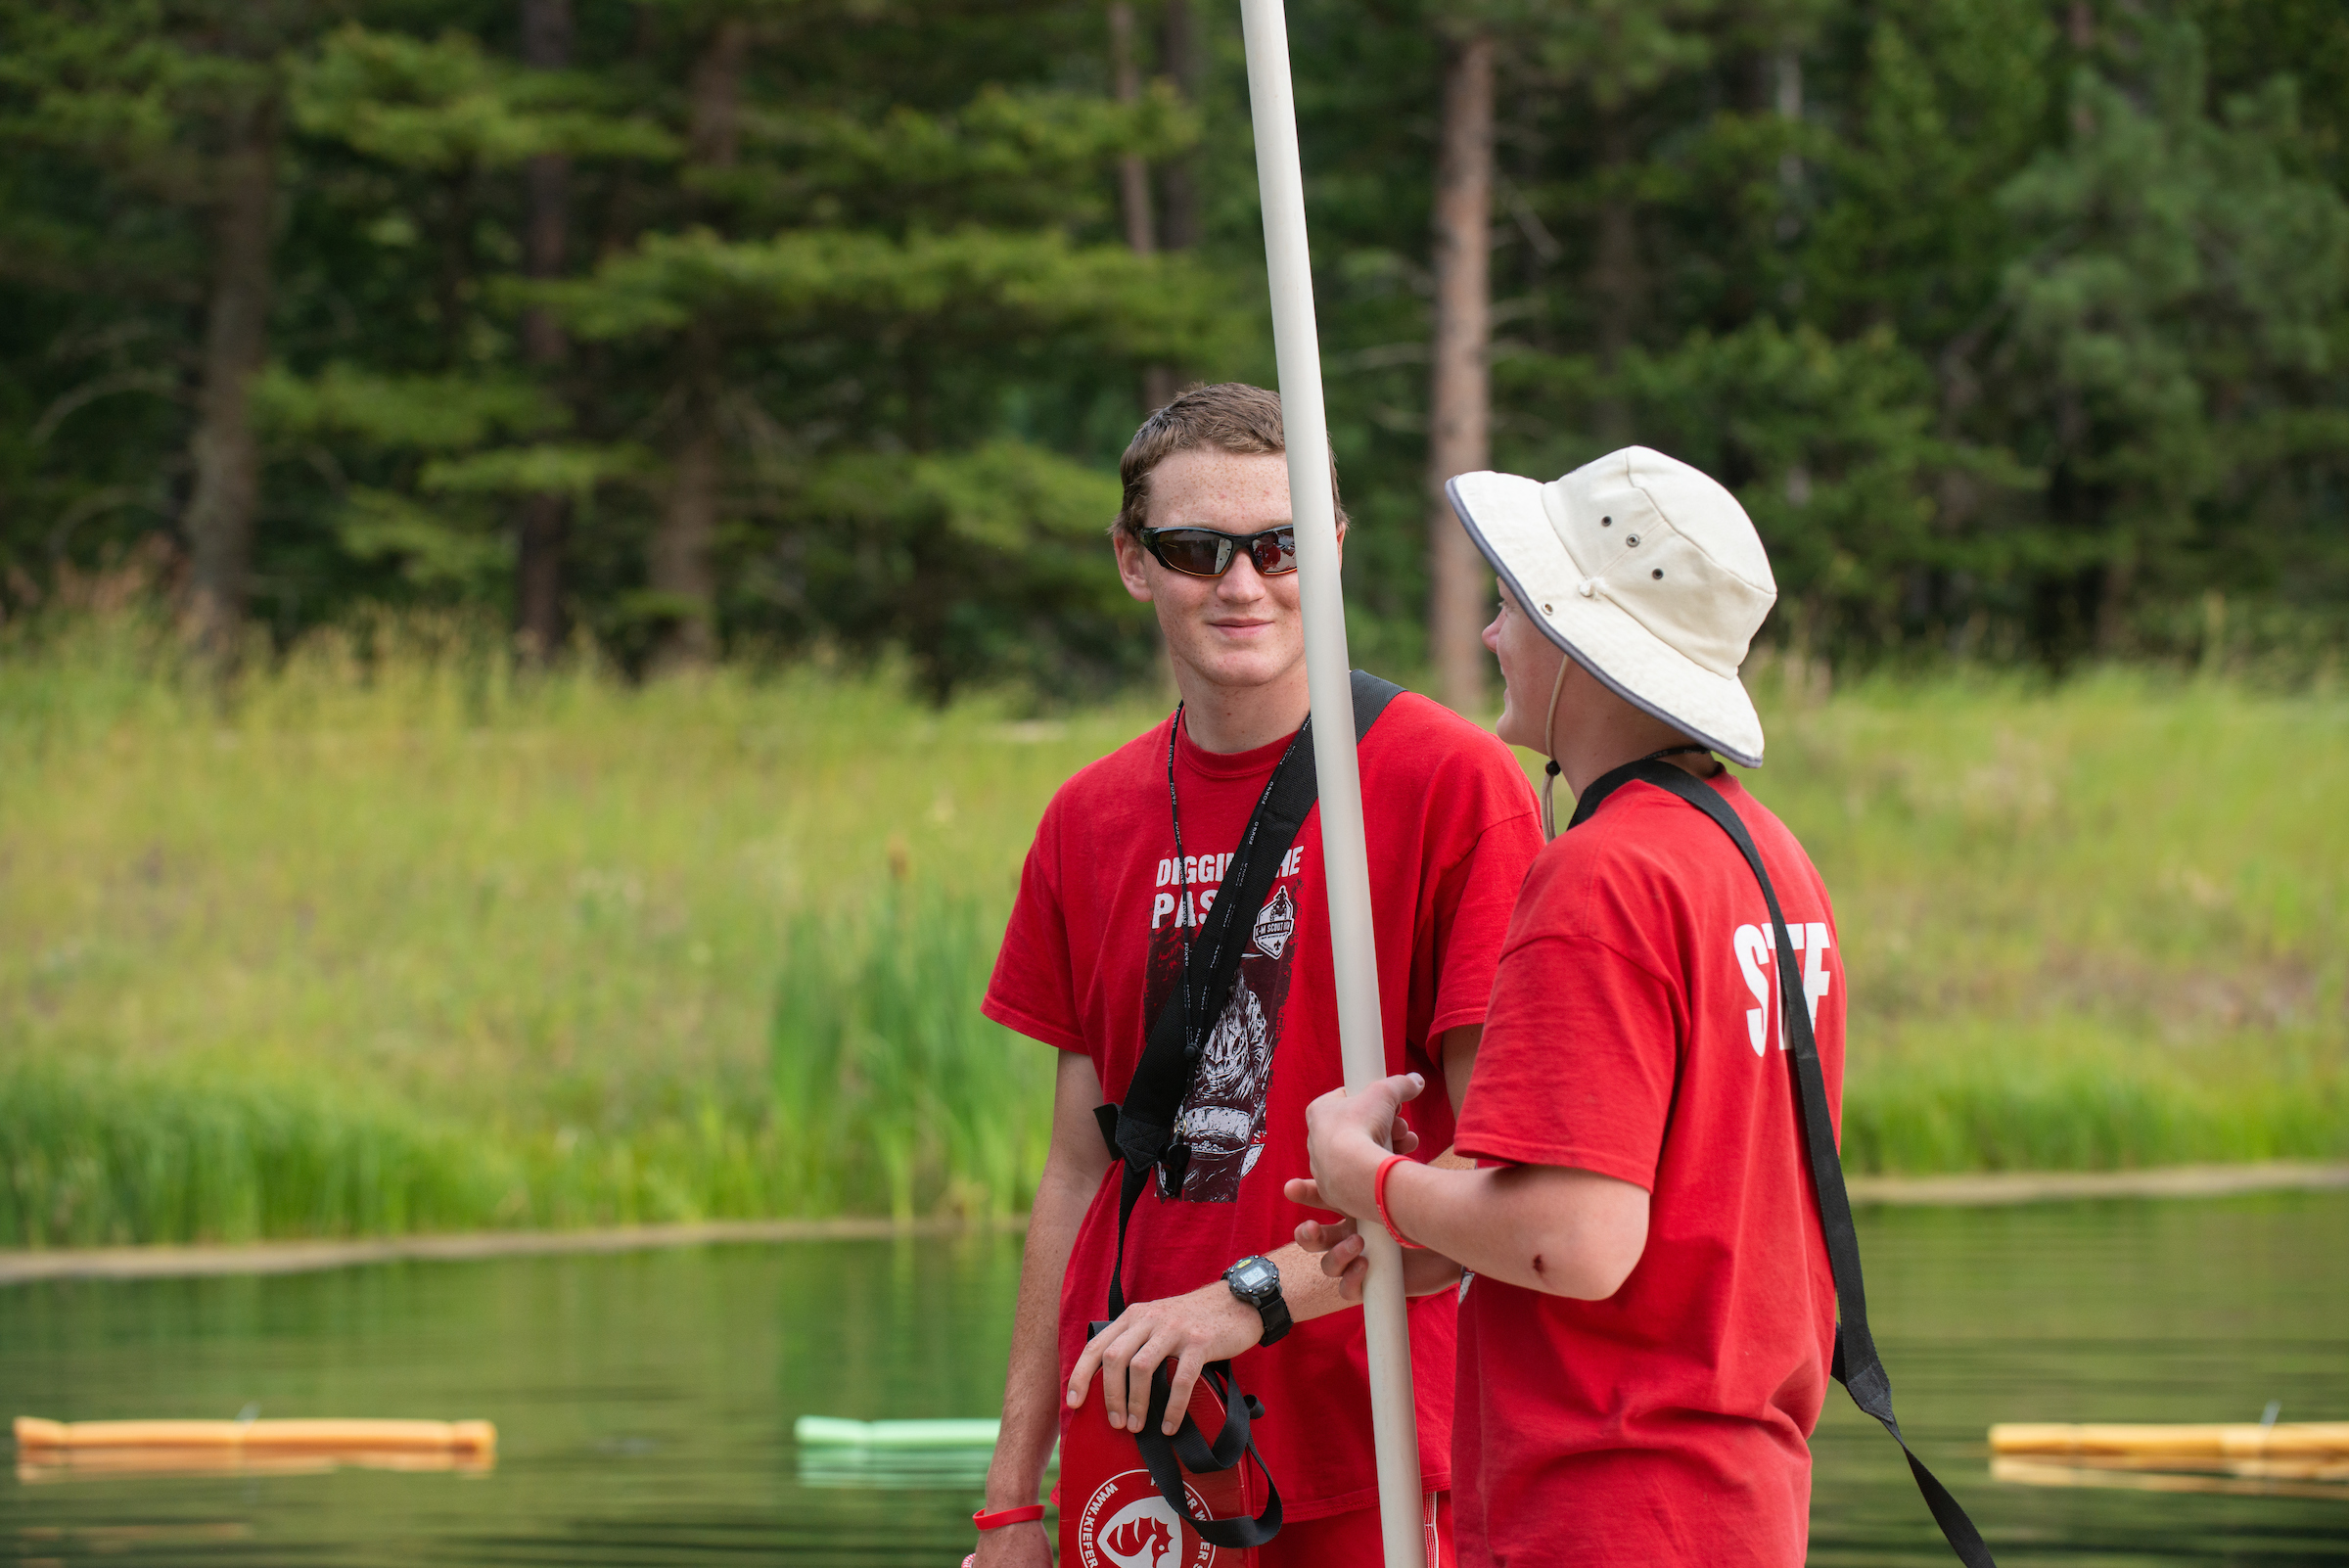 Two camp counselors in red t-shirts talk to each other on a dock